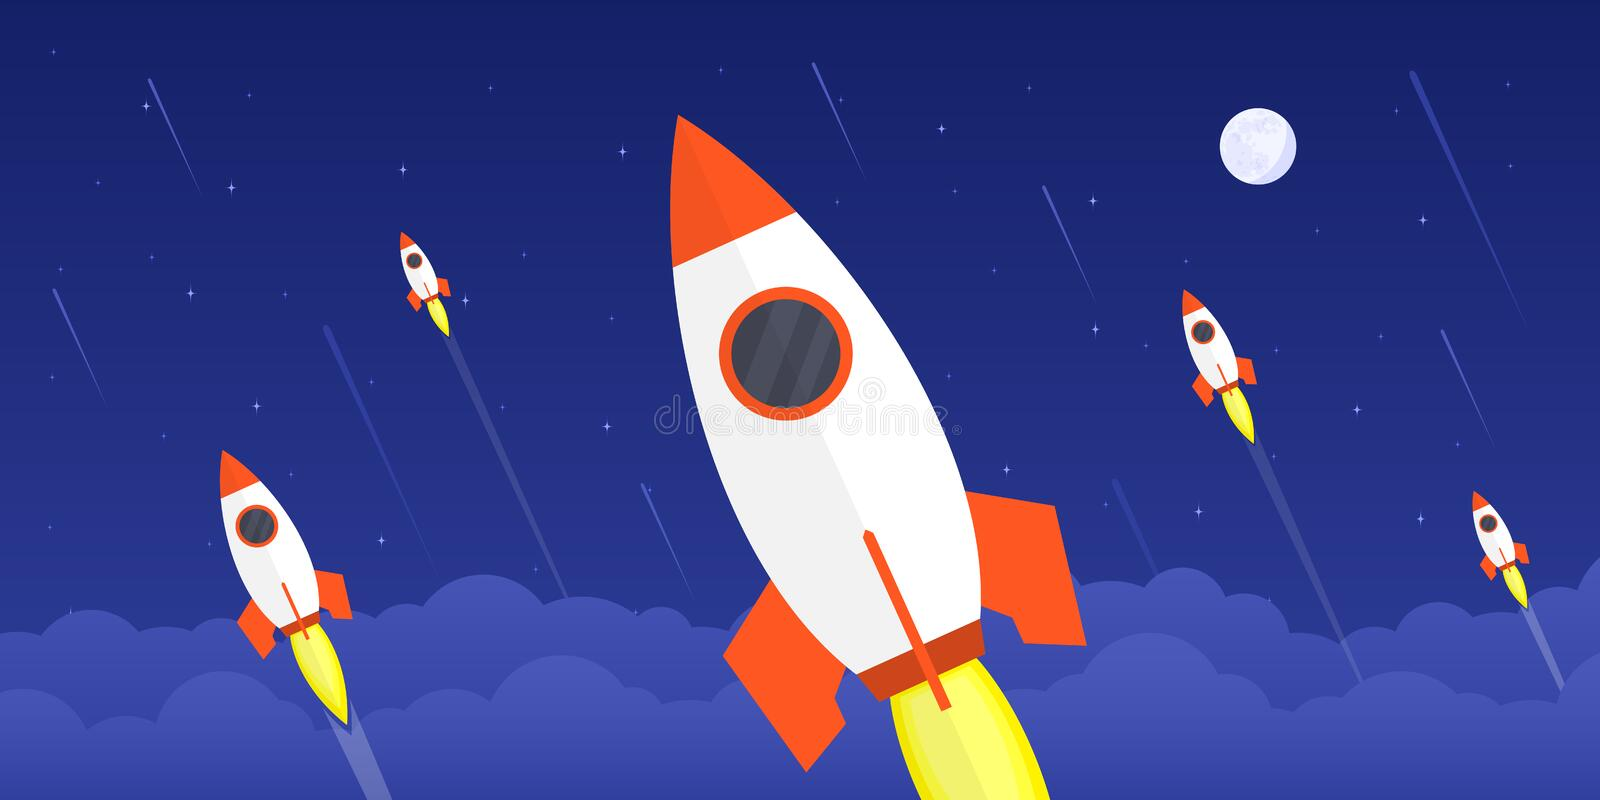 New startup concept. Picture of flying rockets with moon and stars on background, flat style illustration, new startup, new product or service launch concept stock illustration